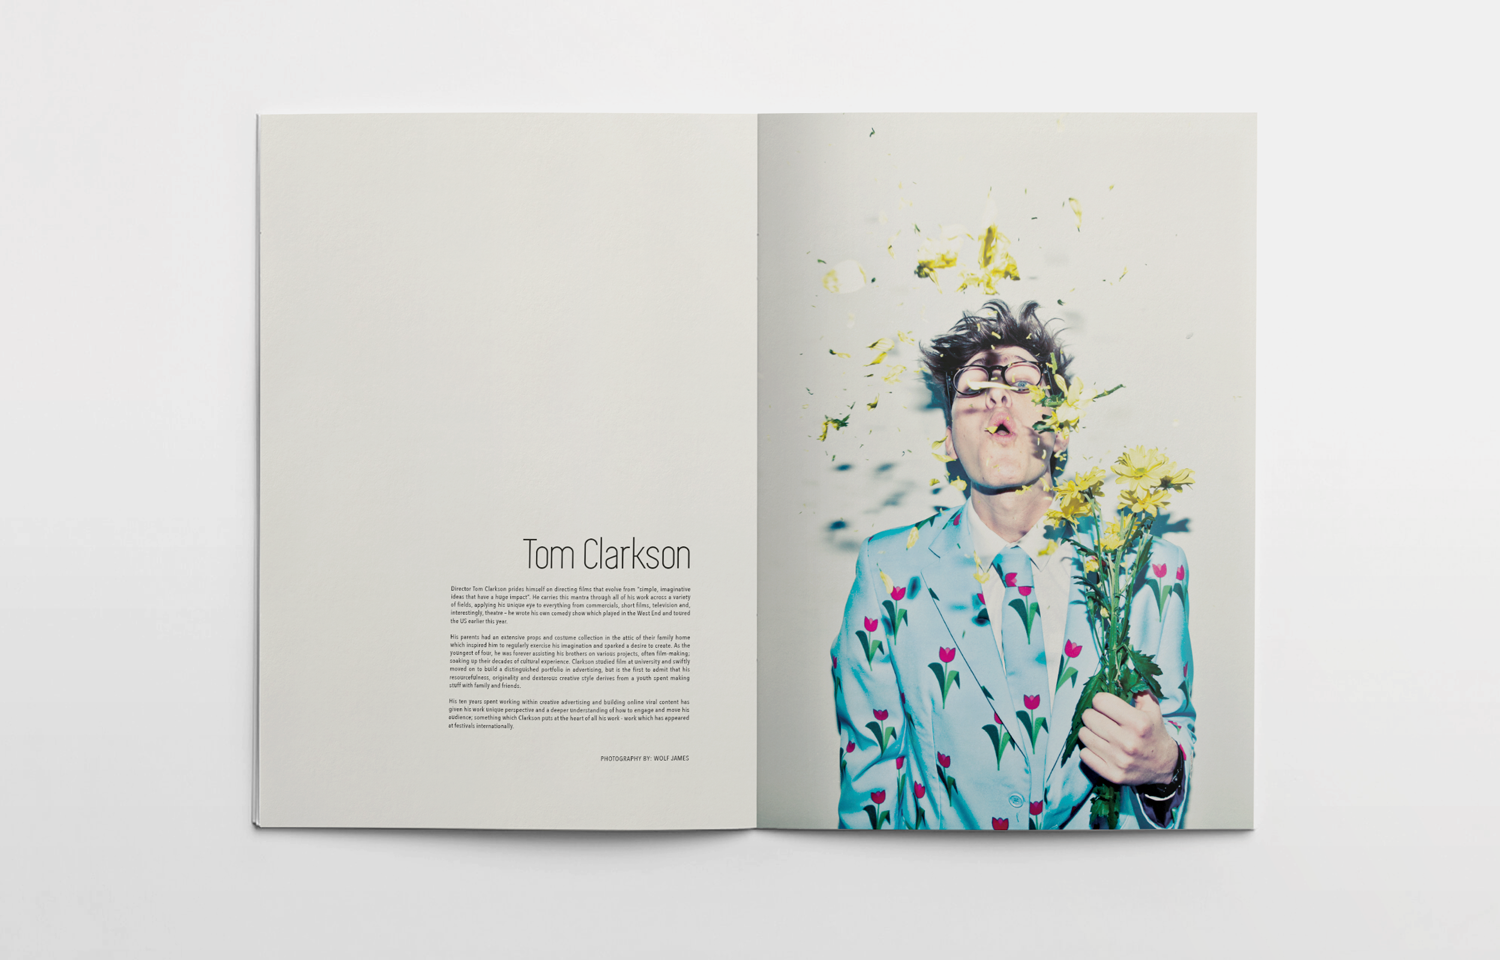 Inside spread for The Pitch Fanzine, issue 3 featuring Tom Clarkson.